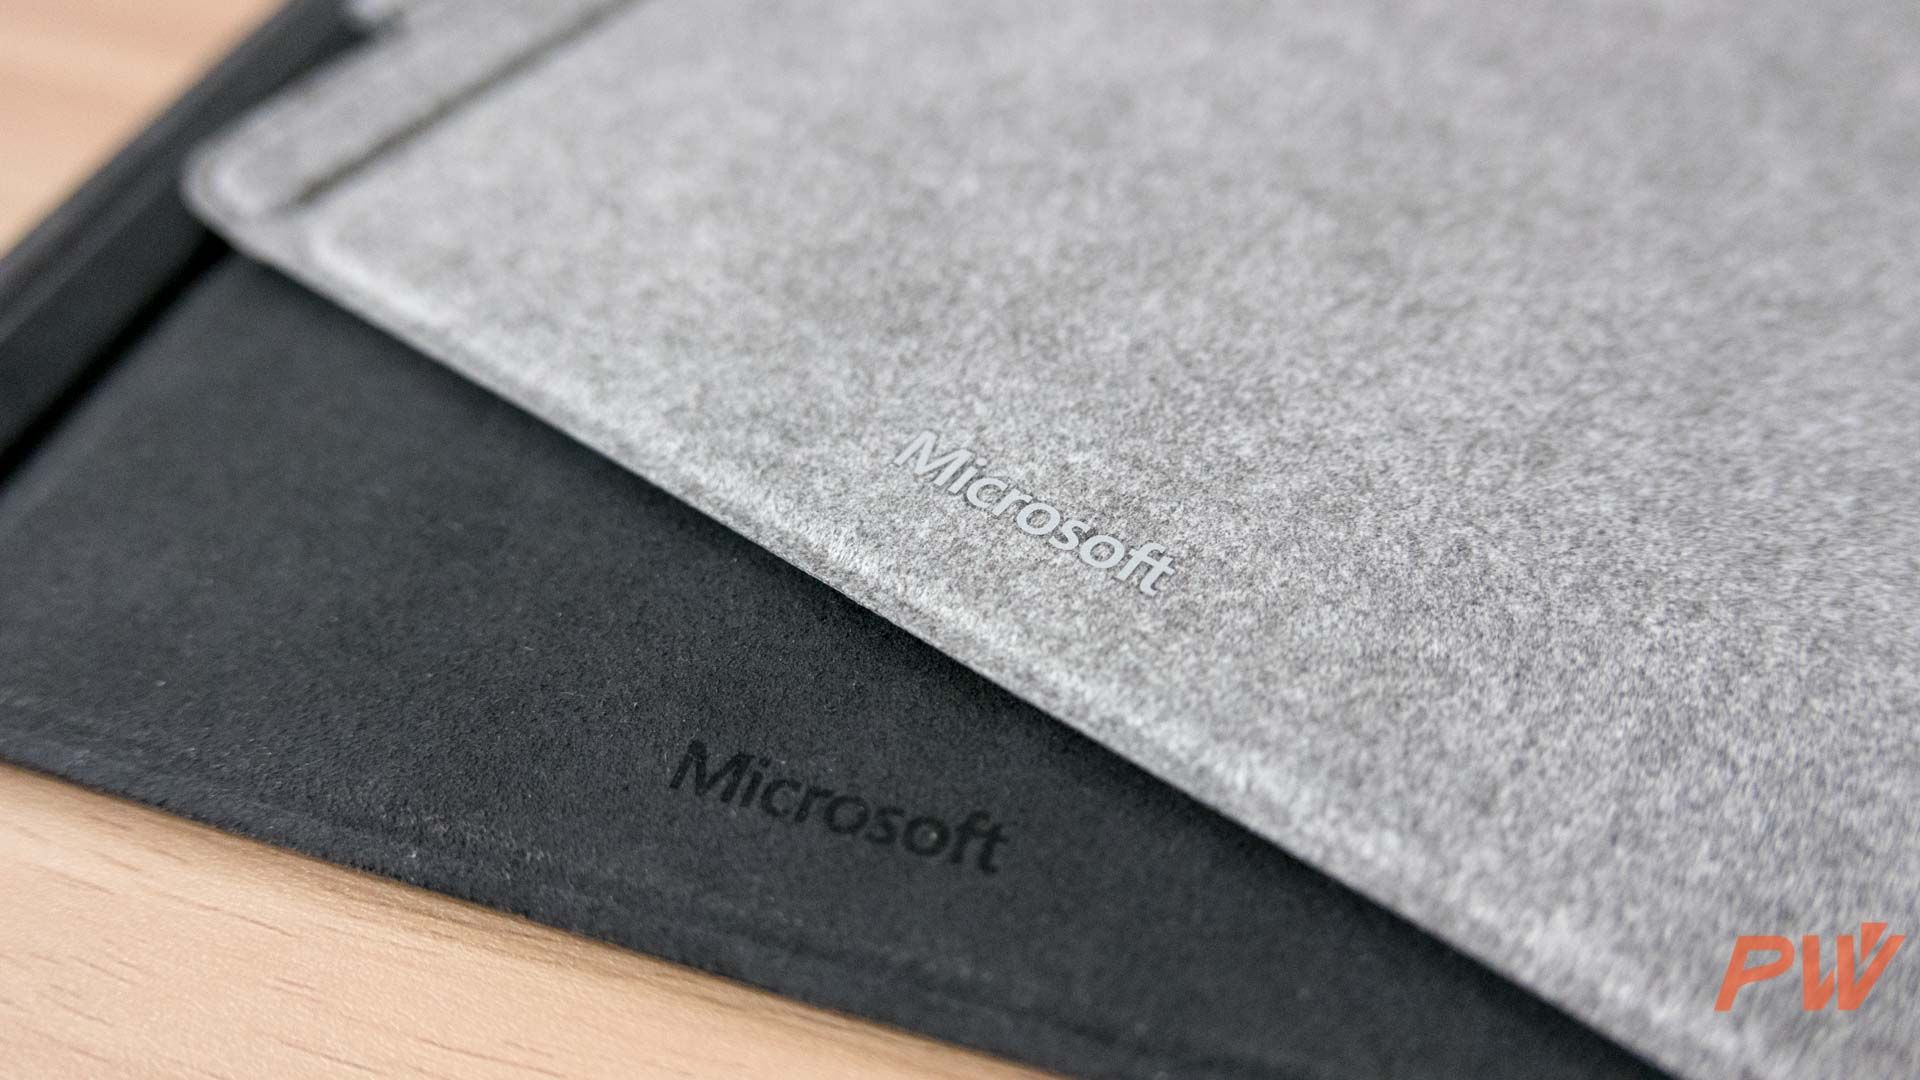 Microsoft Signature Type Cover PingWest Photo By Hao Ying-6